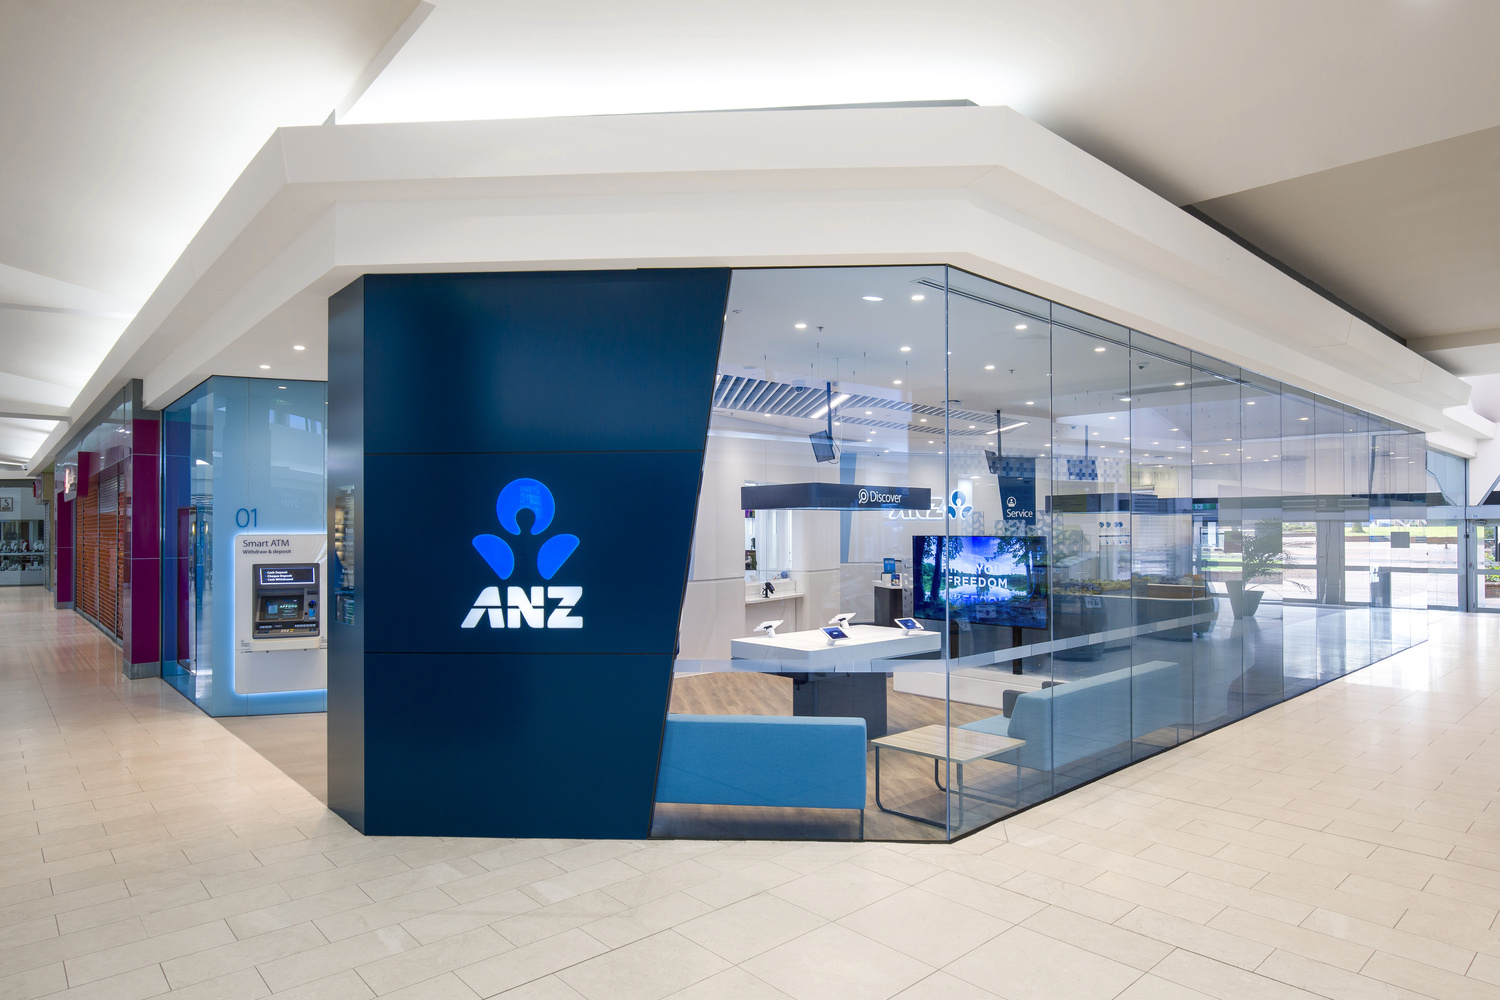 ANZ bank 1 by Roger Thompson